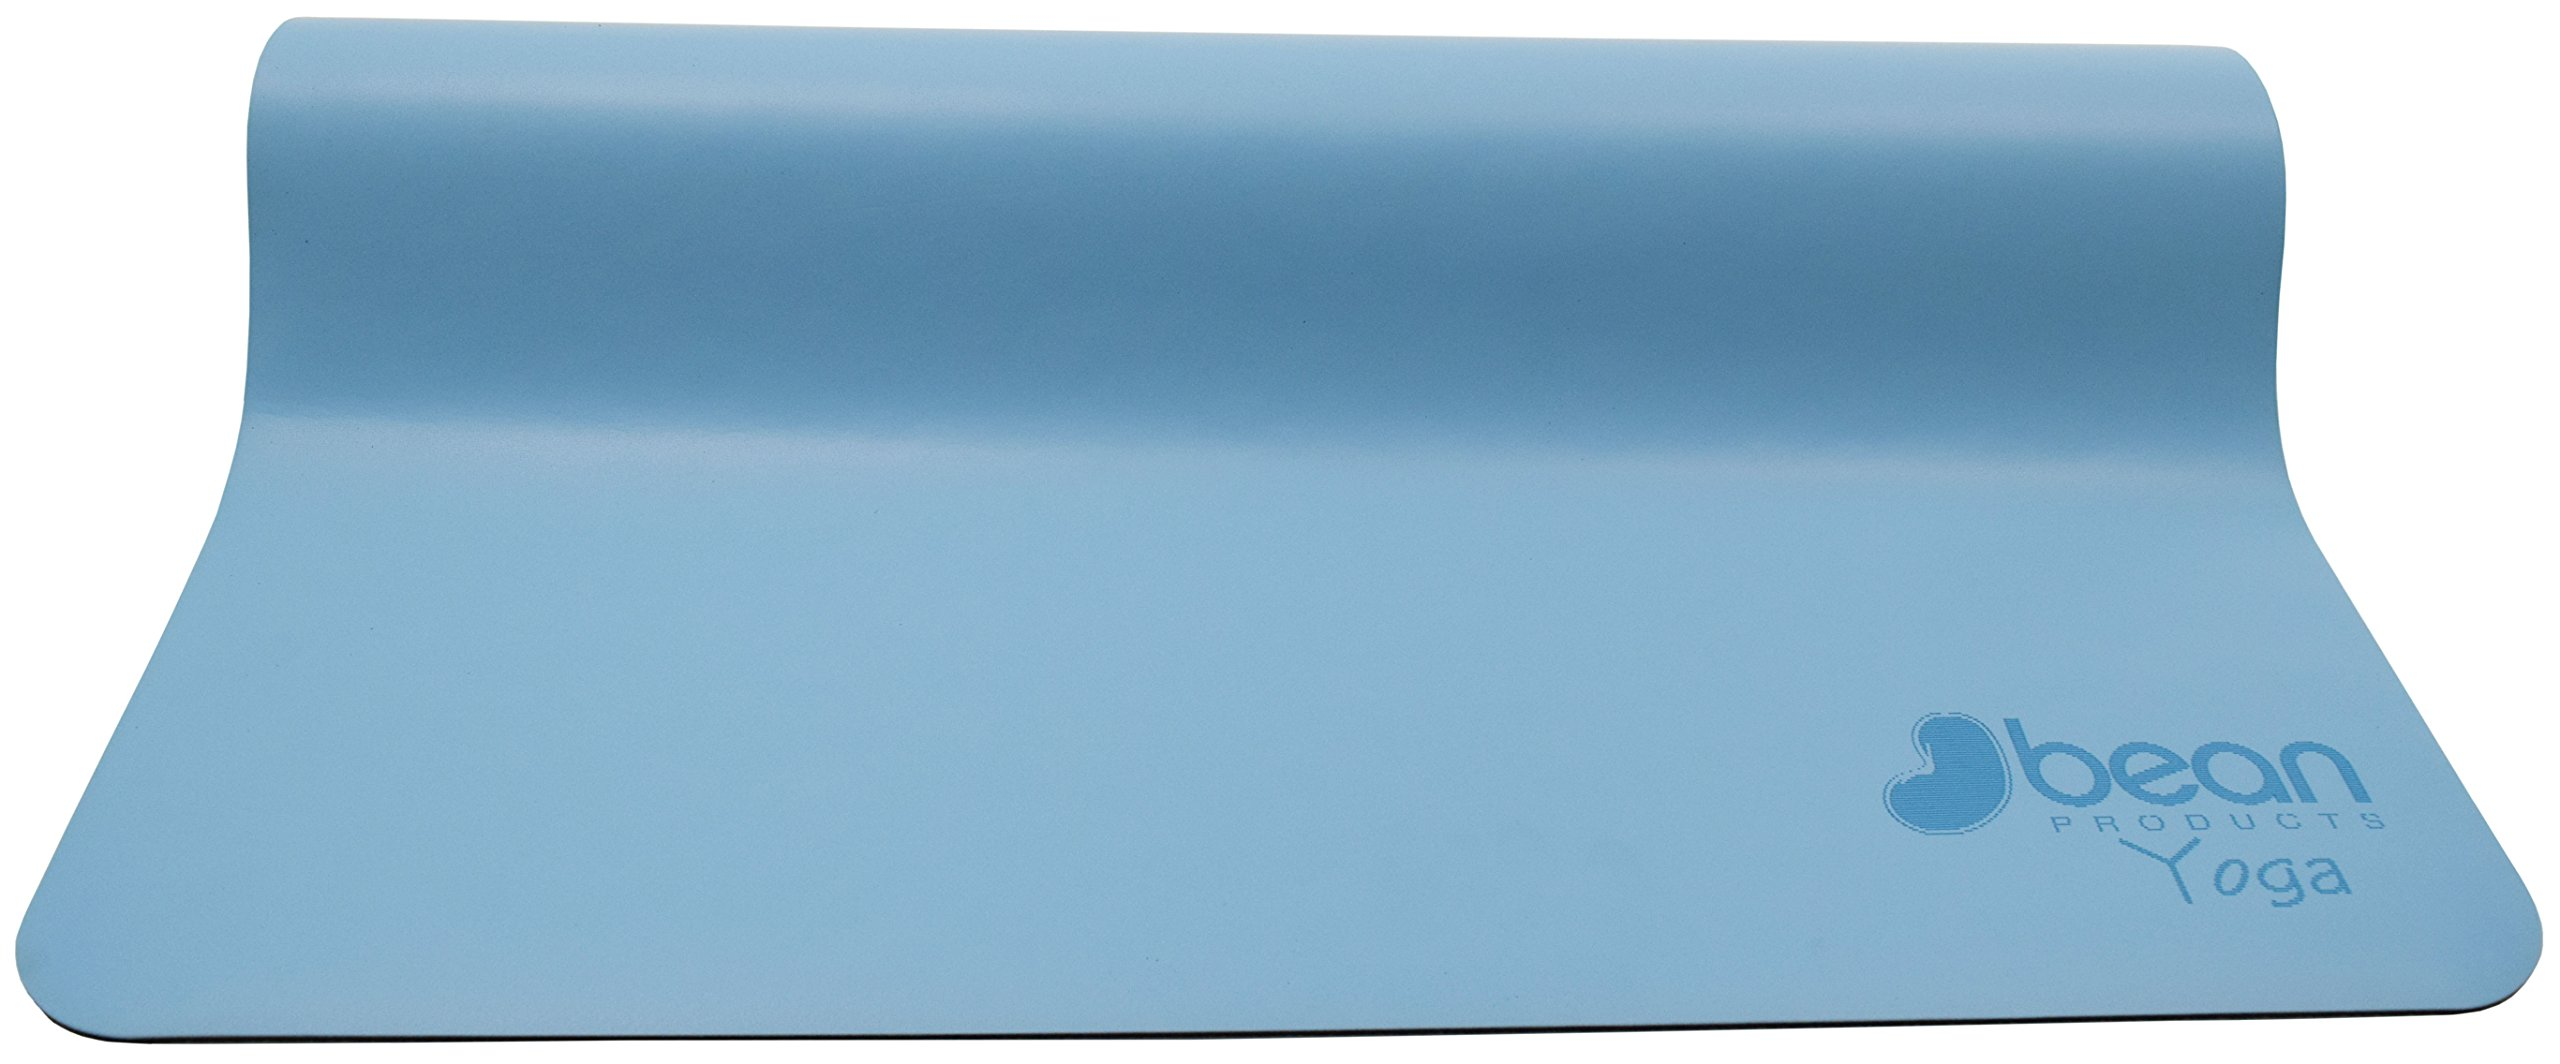 Bean Products Blue Original OMphibian Yoga Mat – The Best Non - Slip (Wet or Dry) Eco-Friendly Natural Rubber Base Yoga Mat from by Bean Products (Image #2)